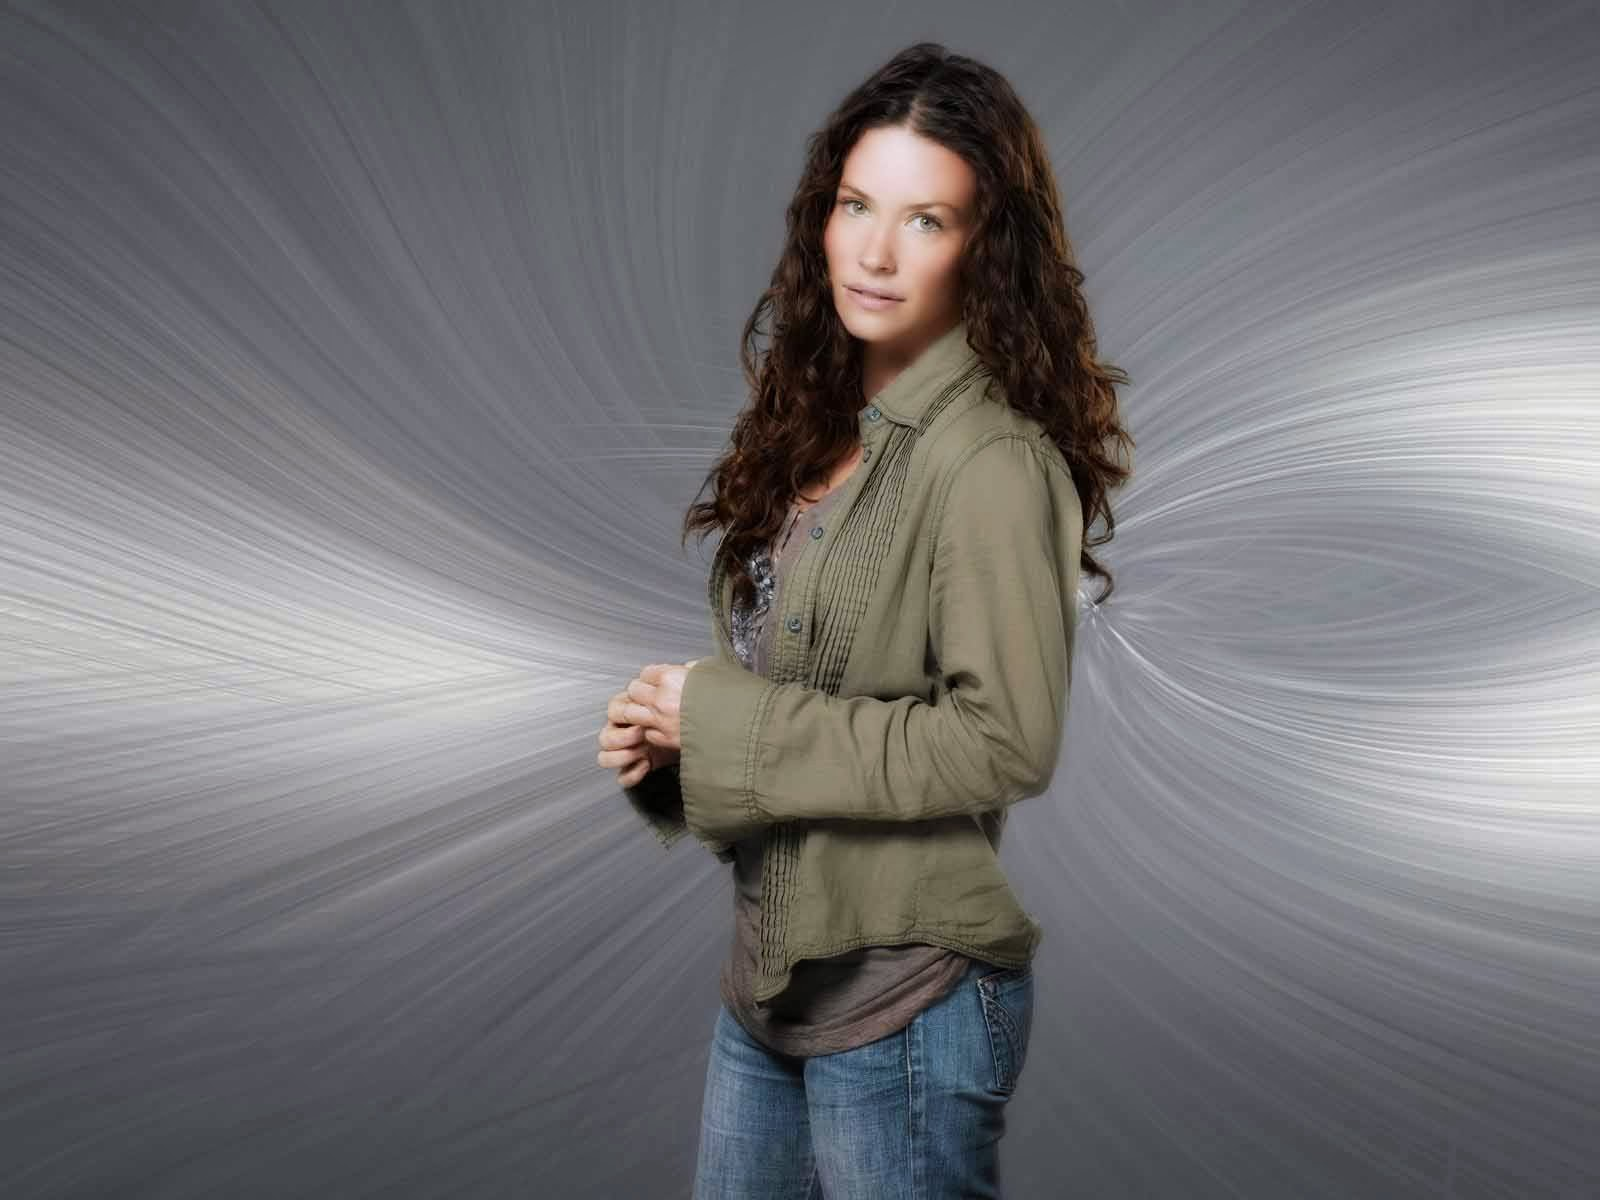 HD Wallpapers Evangeline Lilly Wallpapers 1600x1200